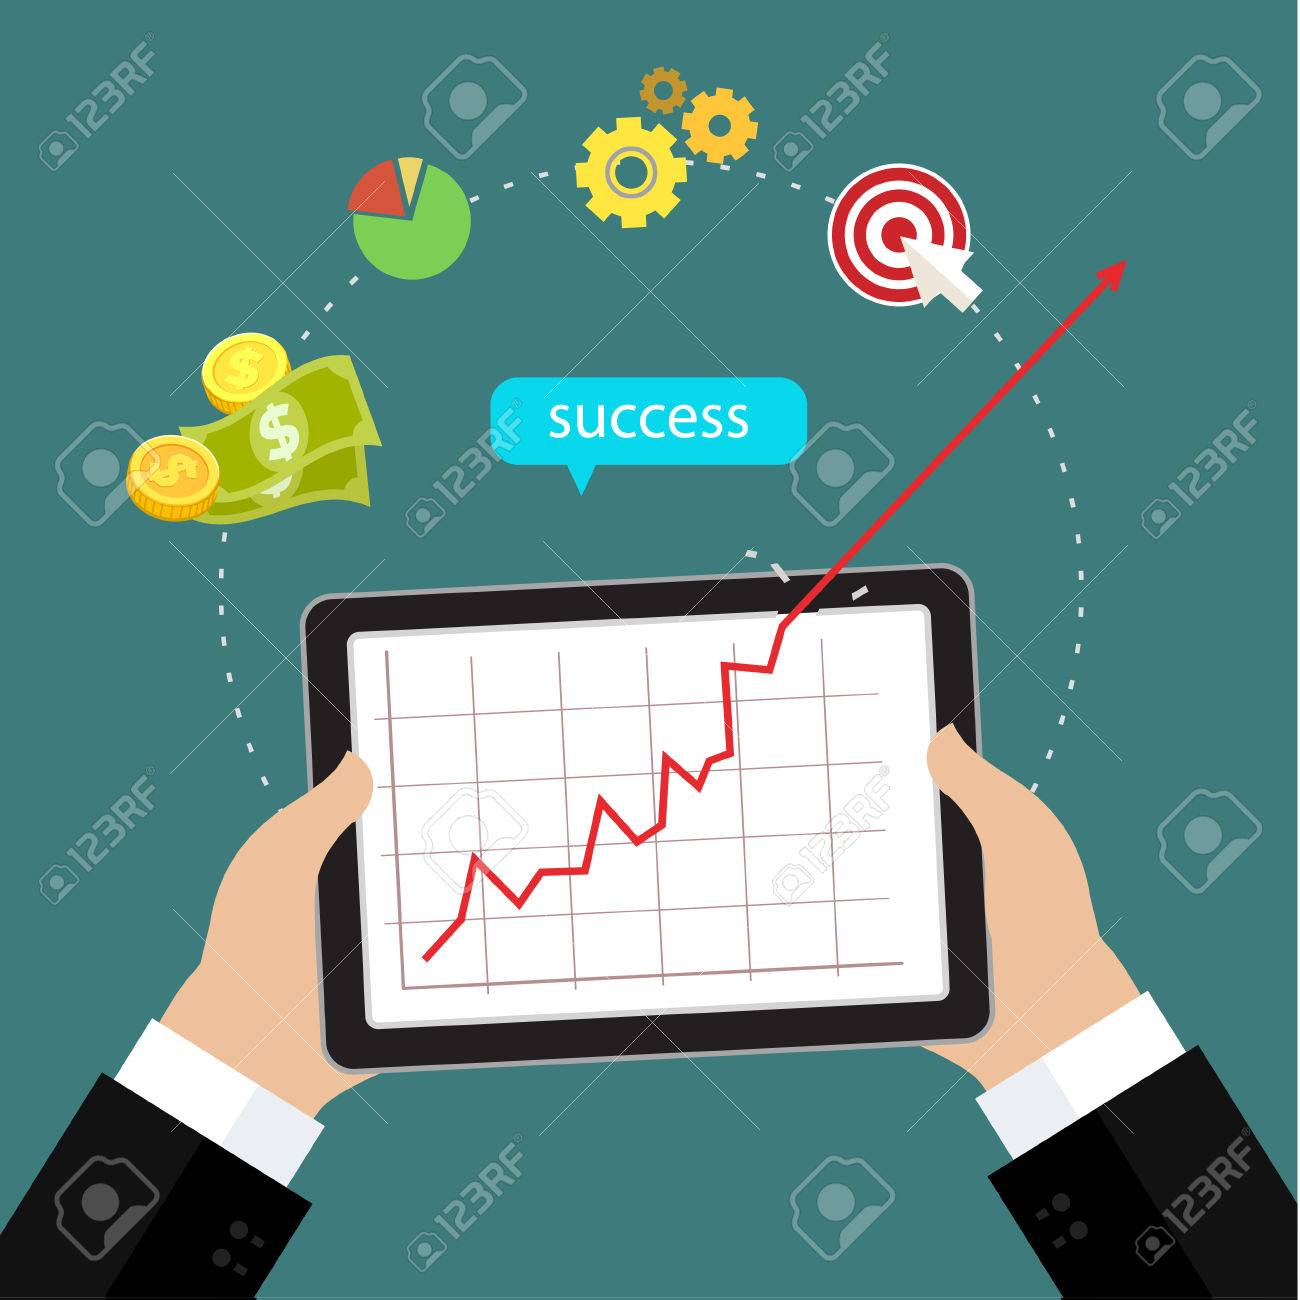 Business concept of success, red arrow shows growth chart. Flat design - 48555286